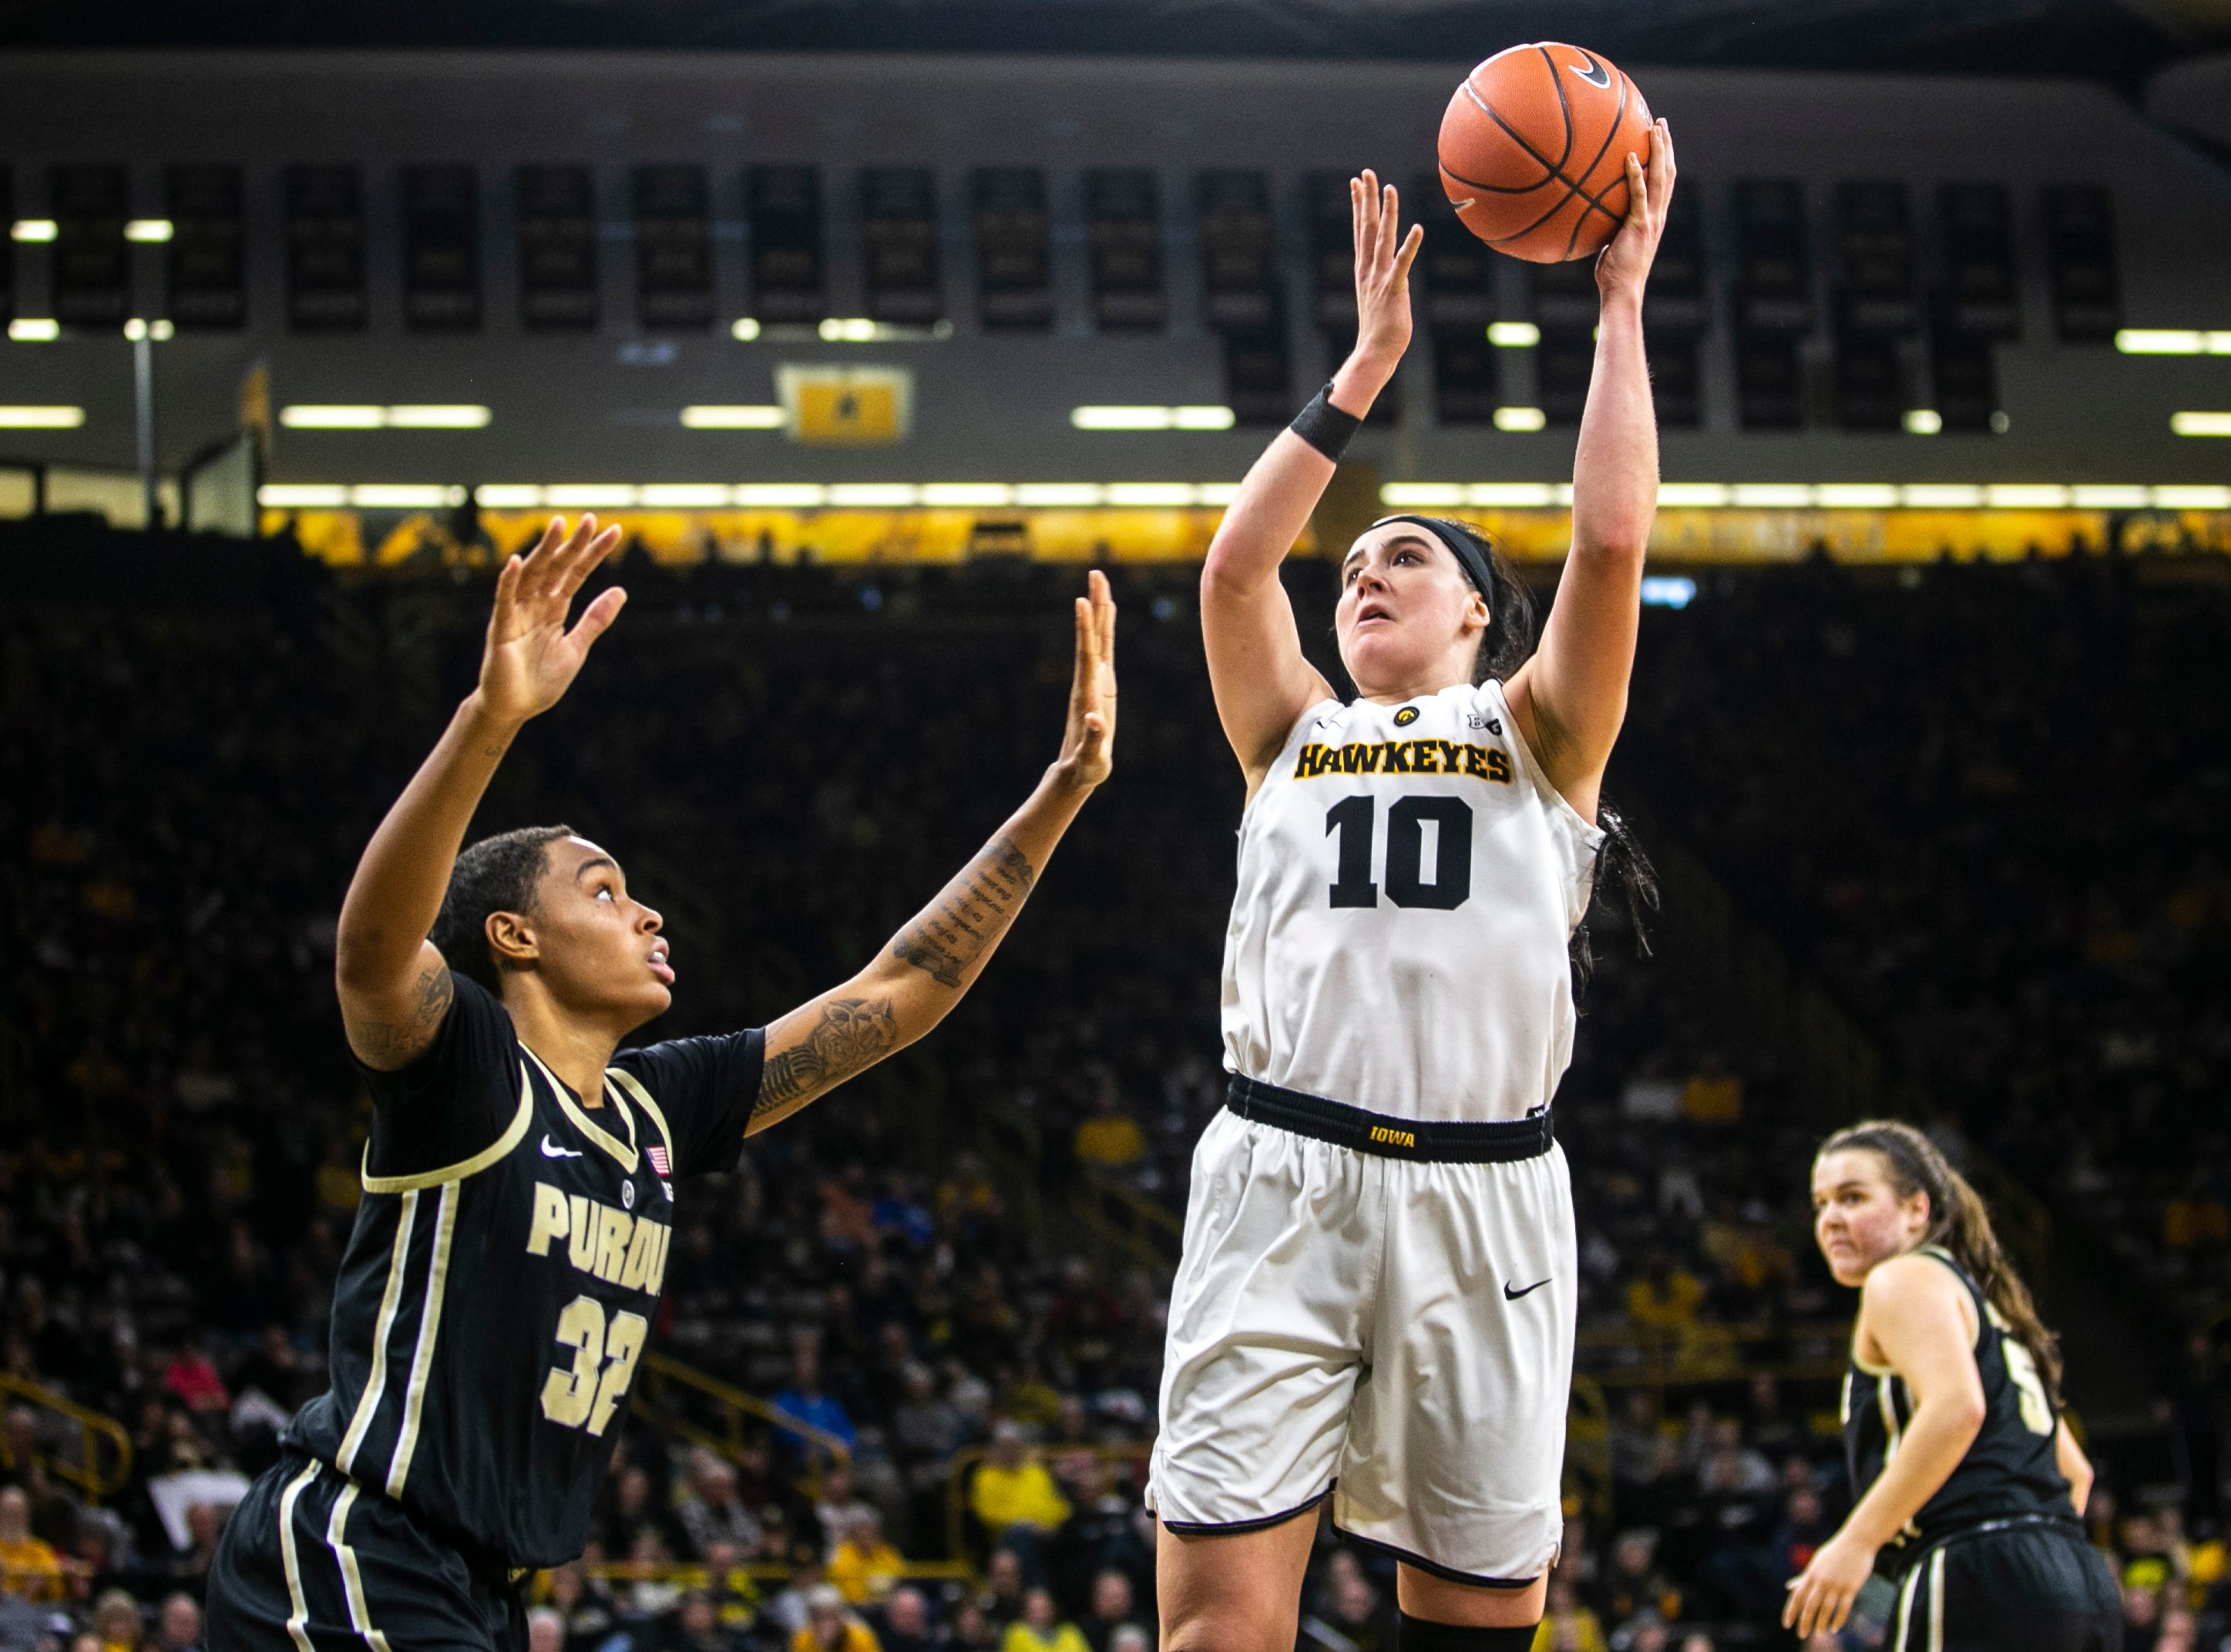 Iowa center Megan Gustafson (10) makes a shot past Purdue forward Ae'Rianna Harris (32) during a NCAA Big Ten Conference women's basketball game on Sunday, Jan. 27, 2019, at Carver-Hawkeye Arena in Iowa City, Iowa.